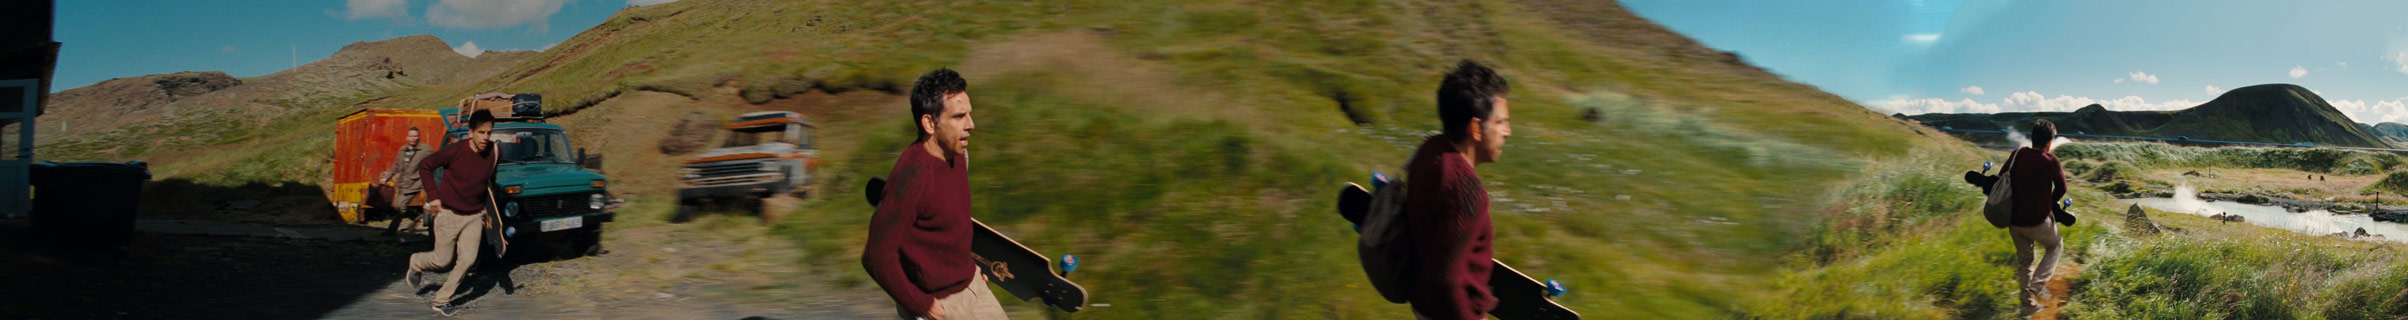 the-secret-life-of-walter-mitty_ben-stiller_running-2_film-panoramas